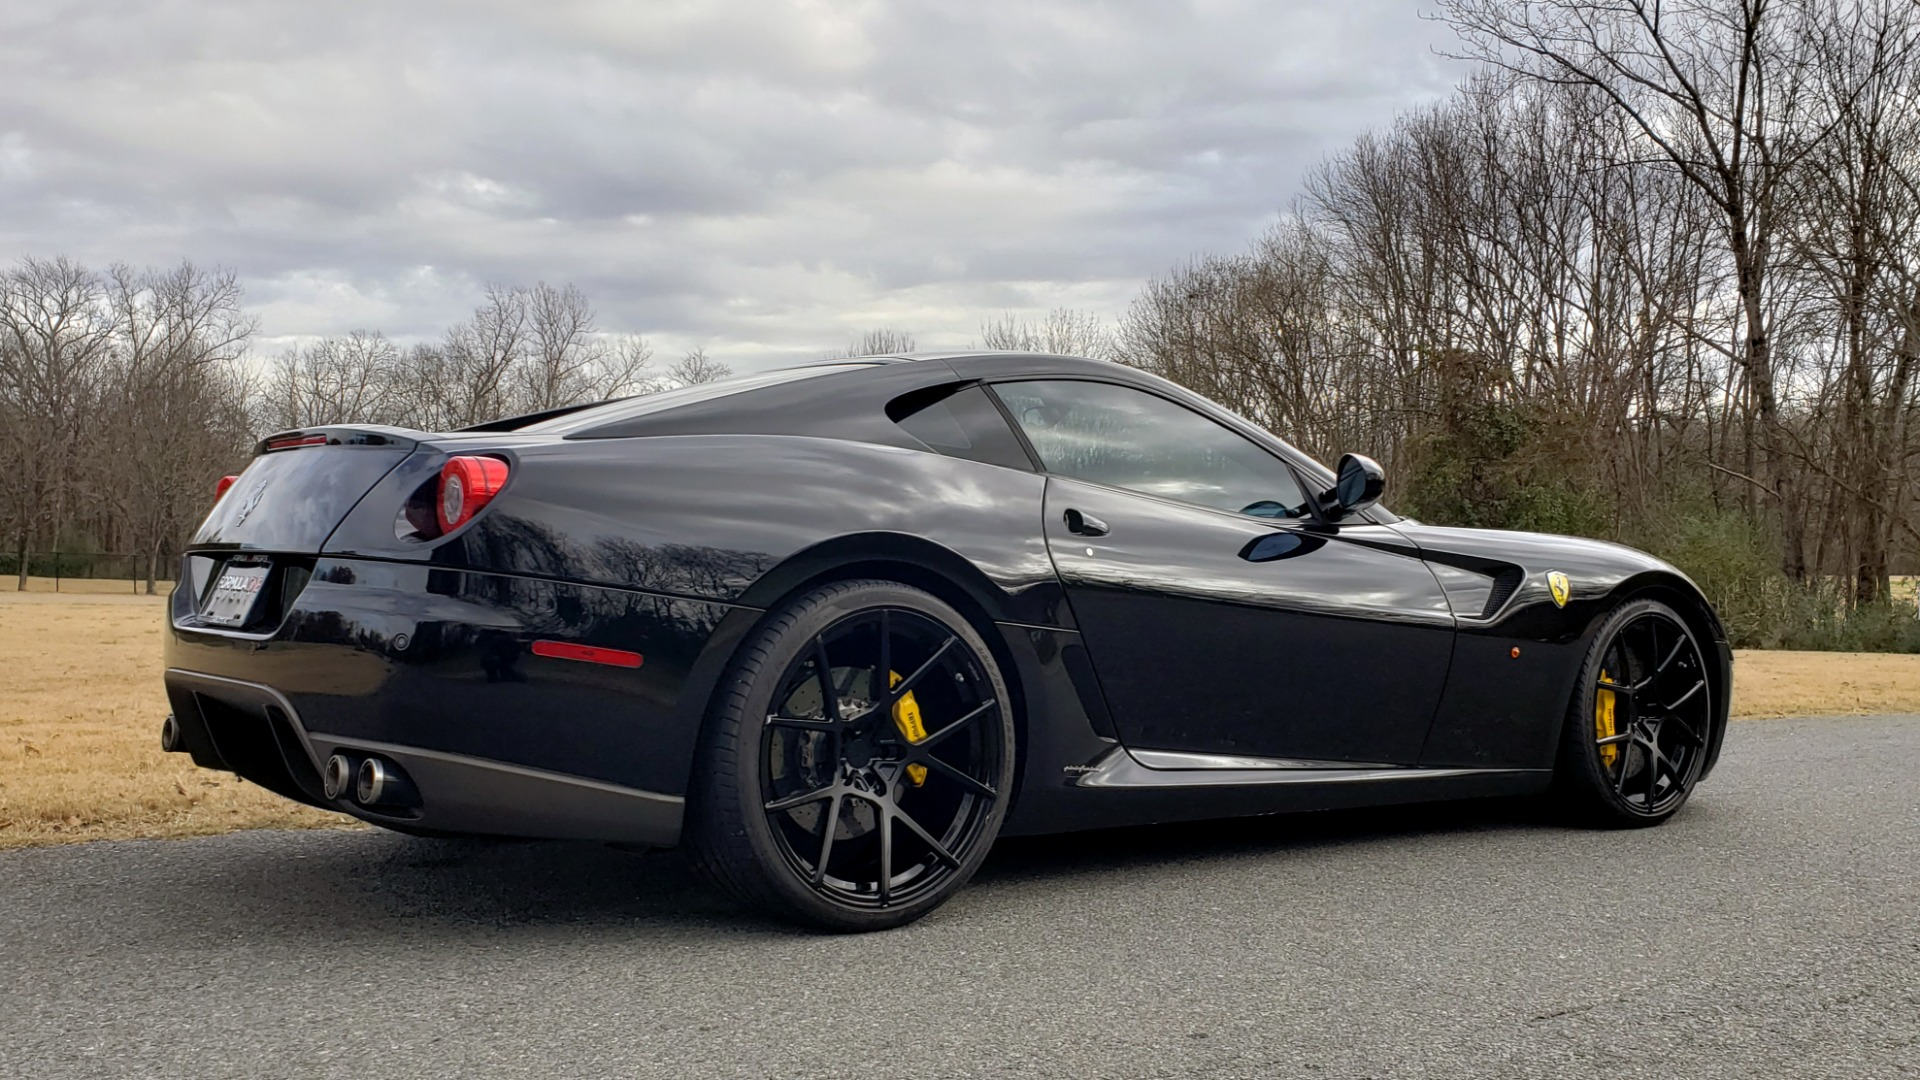 Used 2007 Ferrari 599 GTB FIORANO HGTE / V12 / F1 TRANS / NAV / BOSE / CUSTOM WHEELS for sale Sold at Formula Imports in Charlotte NC 28227 6